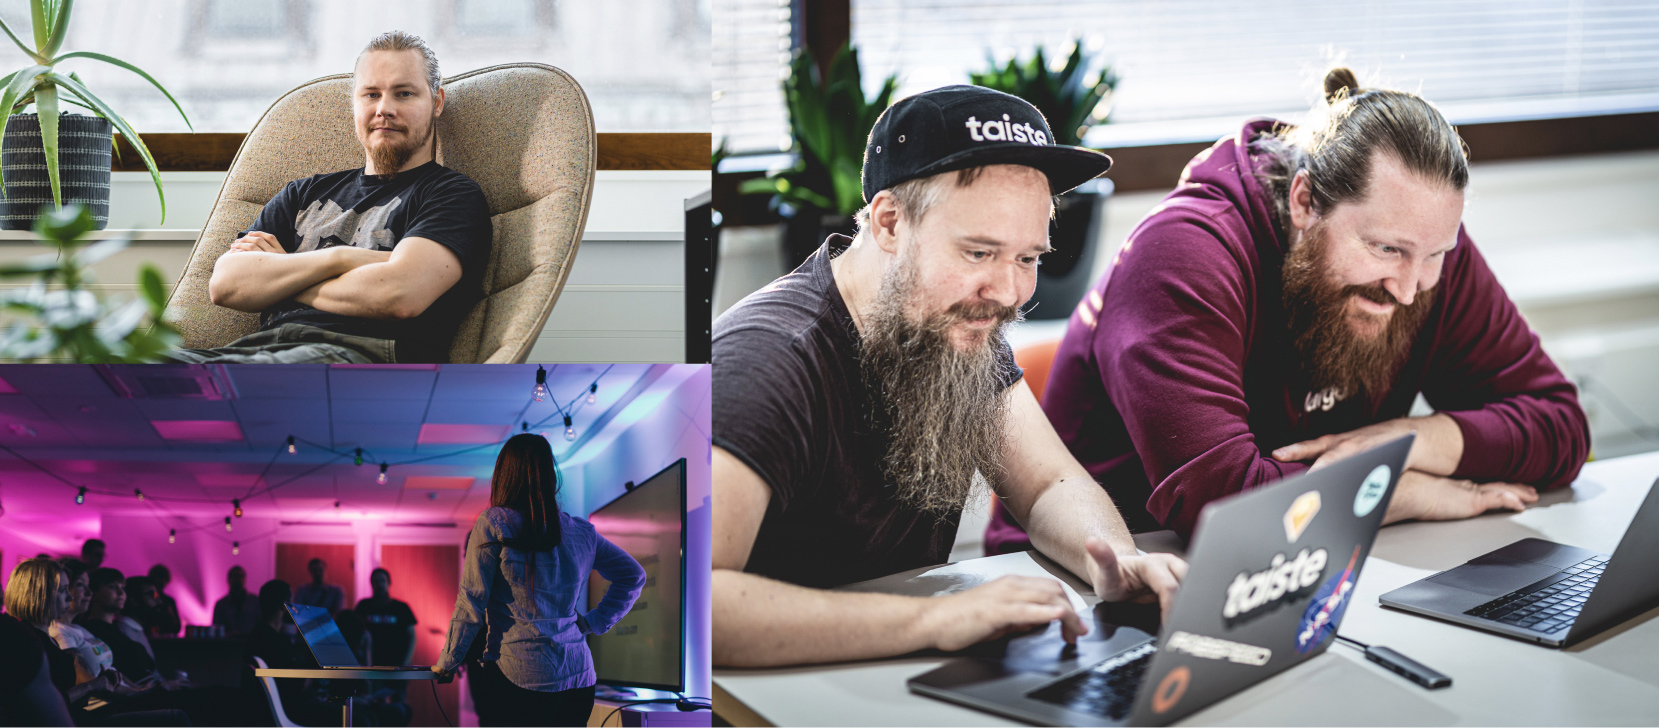 A photo collage from the office: Software Developer Eetu sitting on a chair, UX Designers Ville and Joona working together and a visitor having a presentation in front of a small audience.